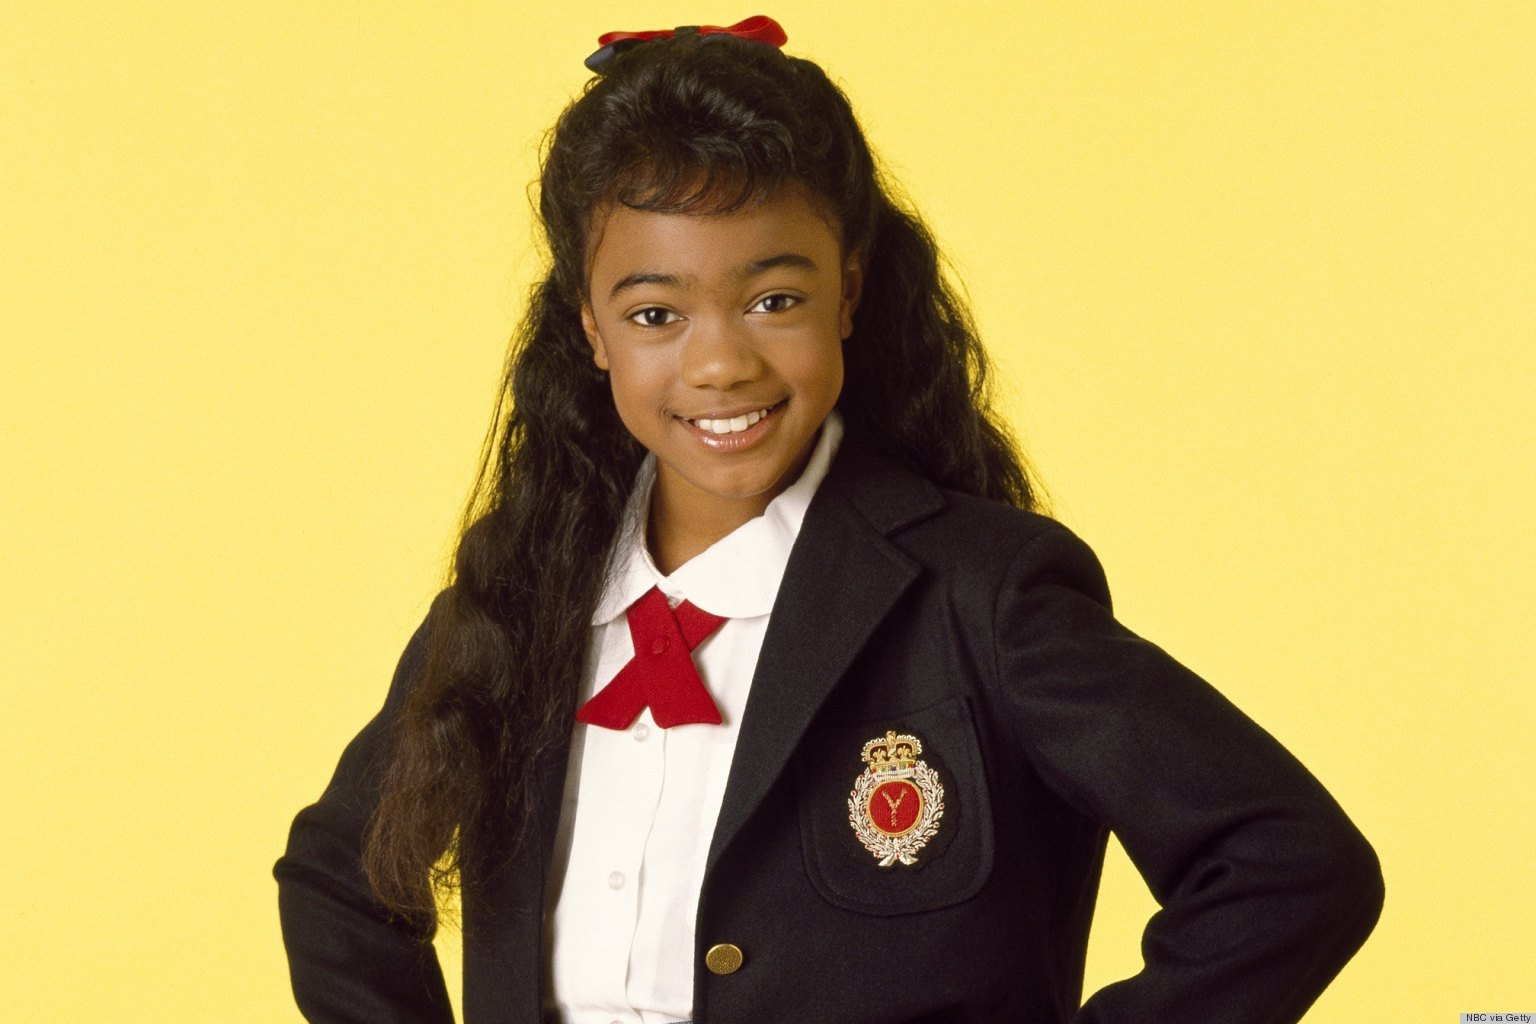 Tatyana ali fresh prince of bel air